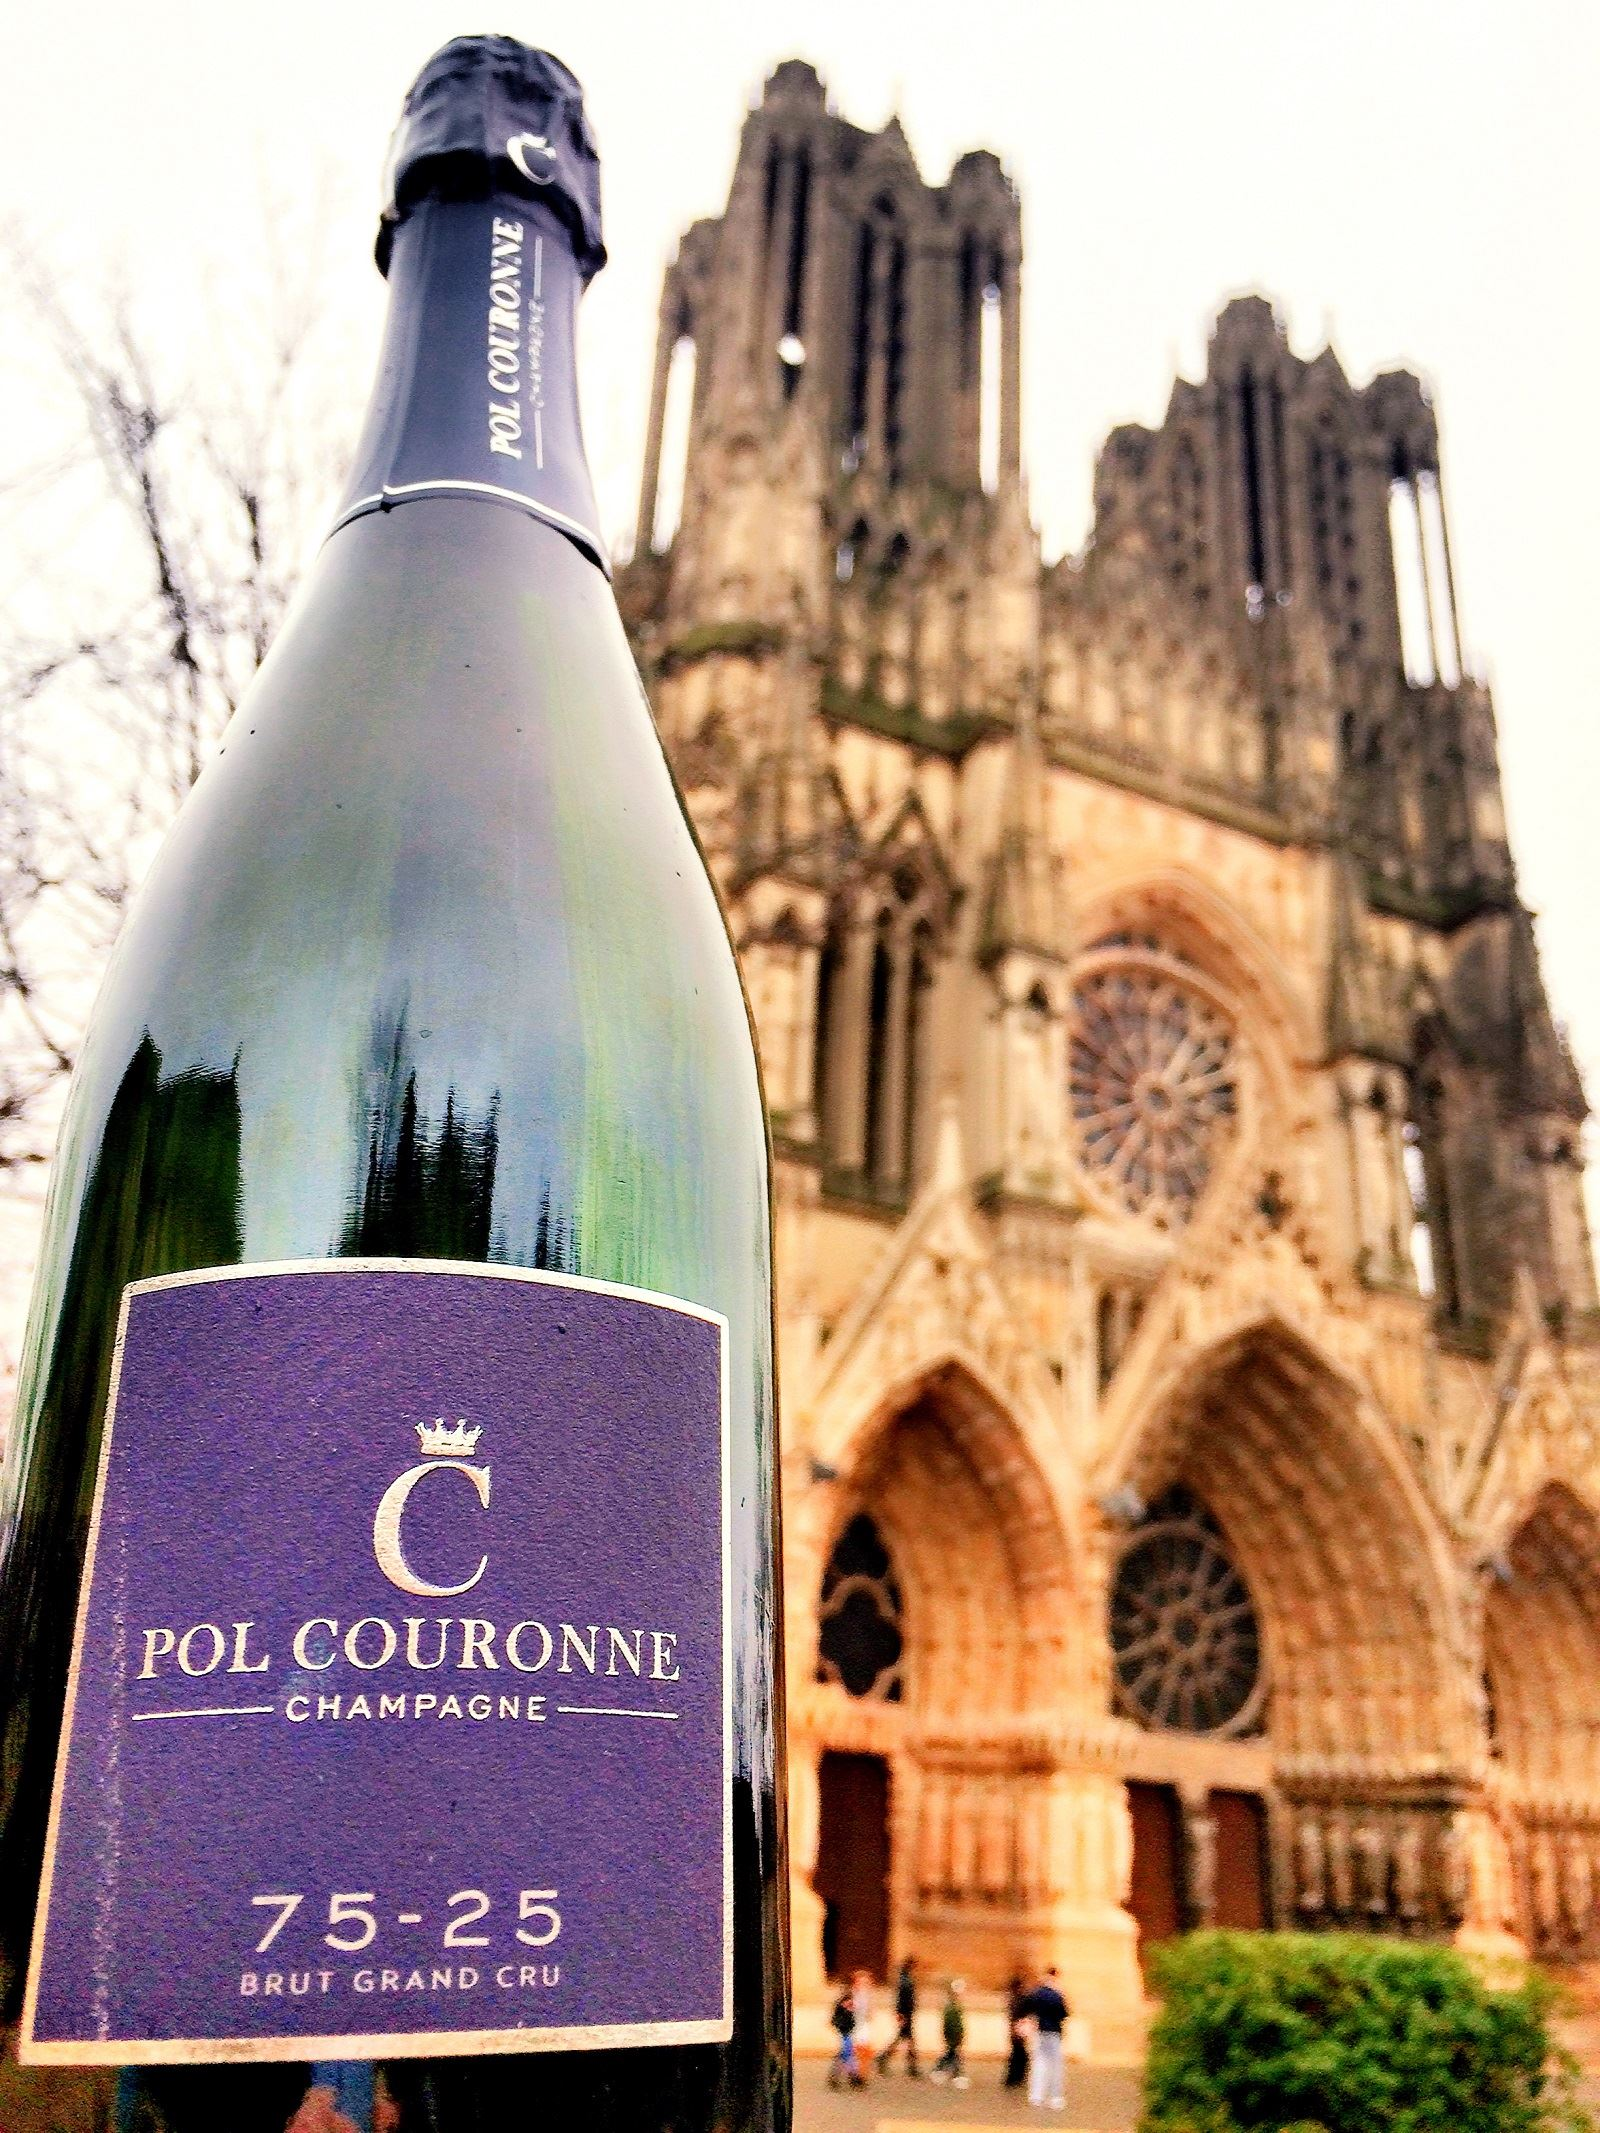 Pol Couronne champagne discovery day